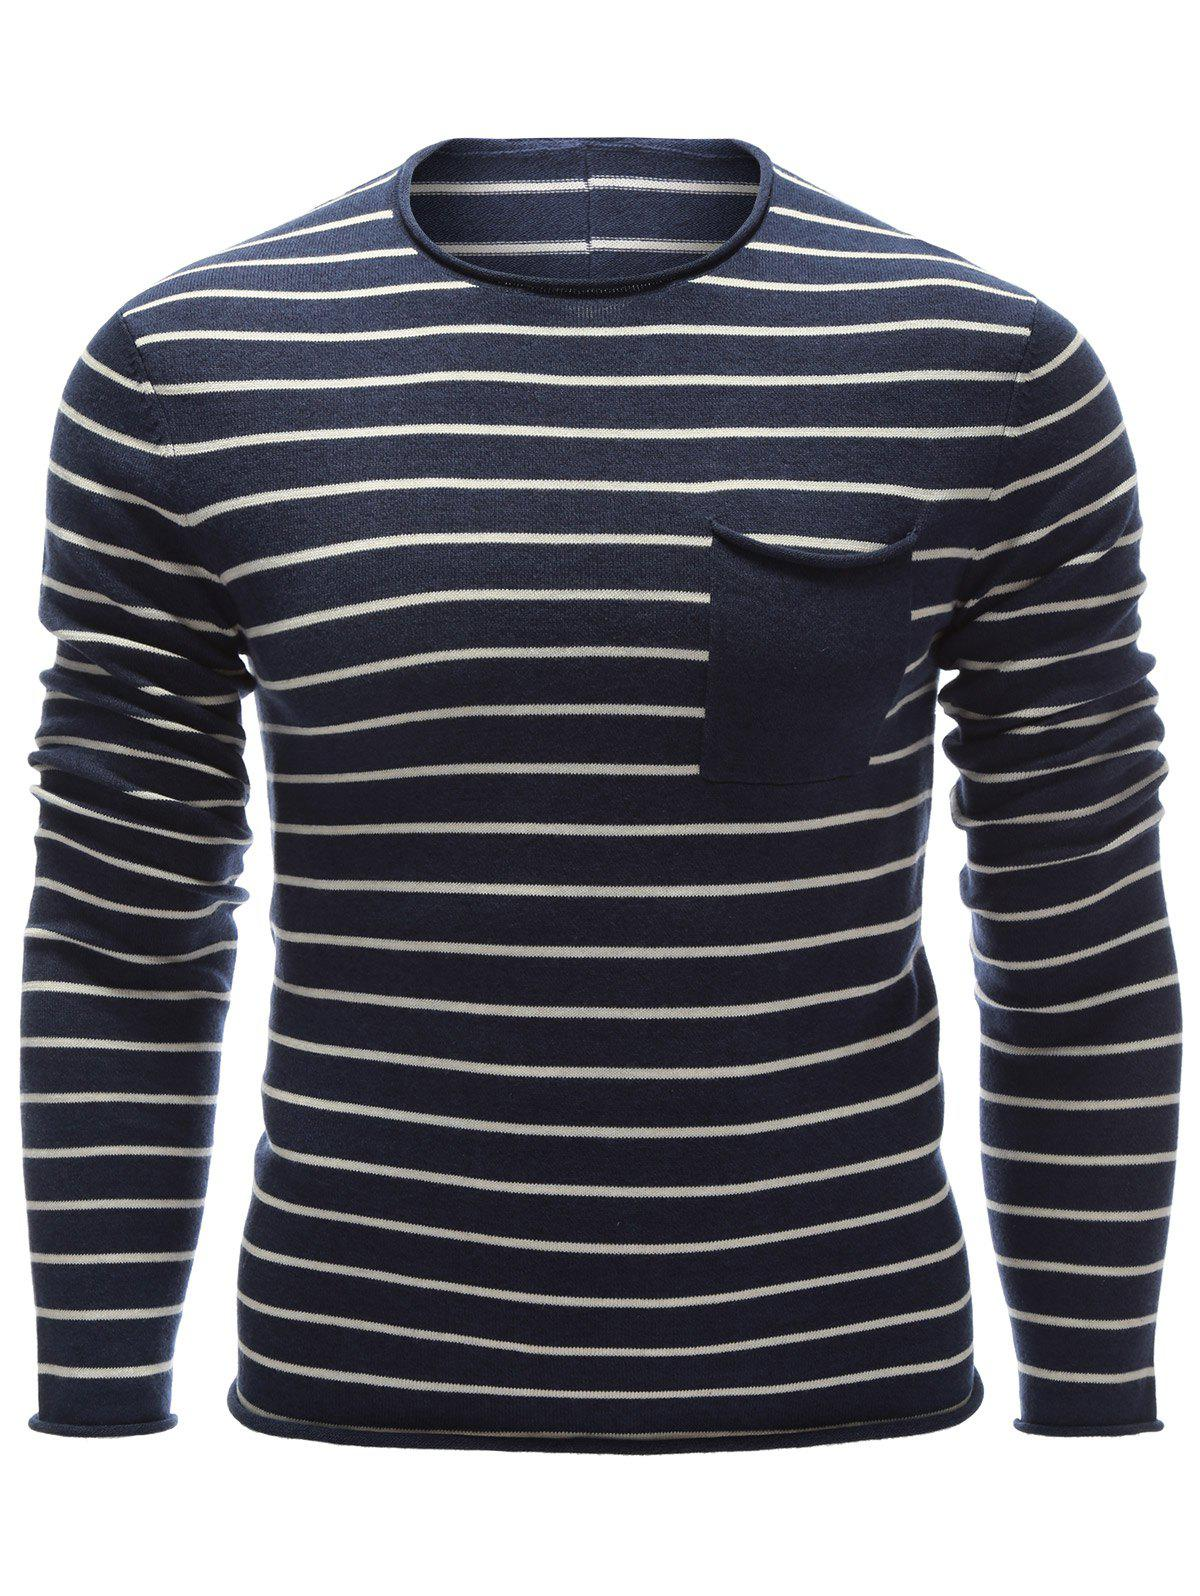 Chest Pocket Round Neck Striped Sweater round neck striped ripped sweater